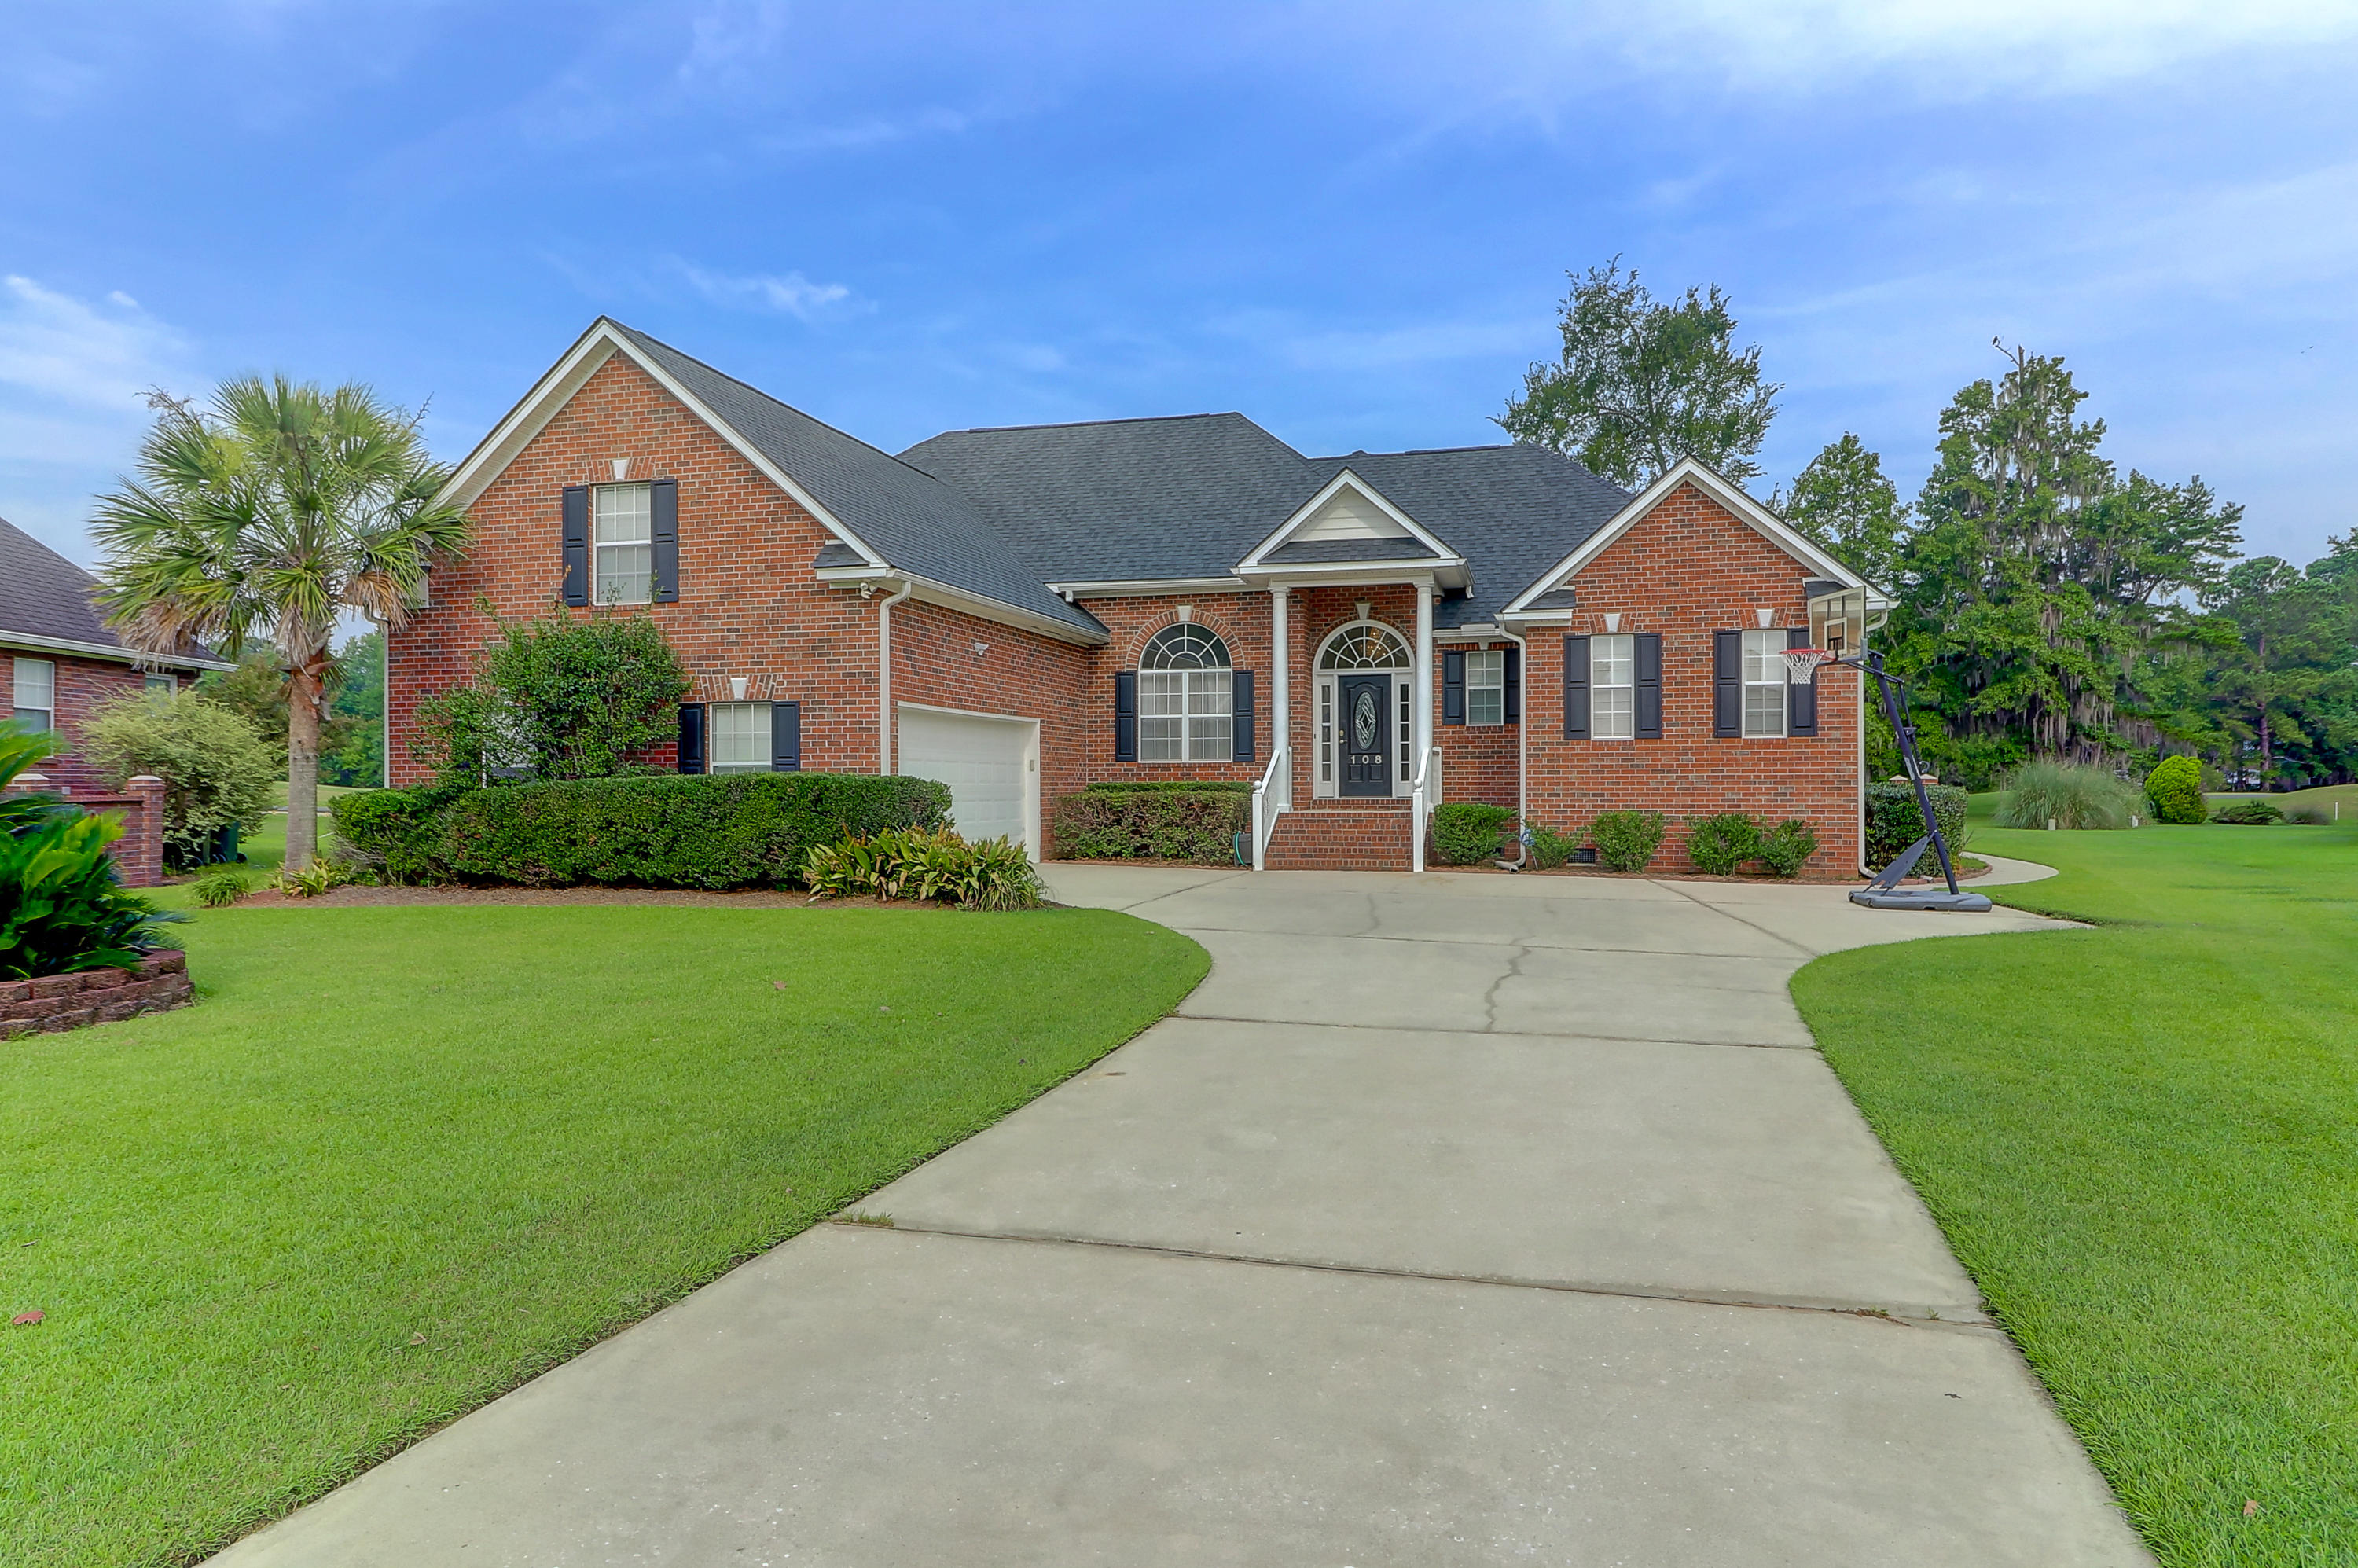 108 Amanda Circle Goose Creek, Sc 29445